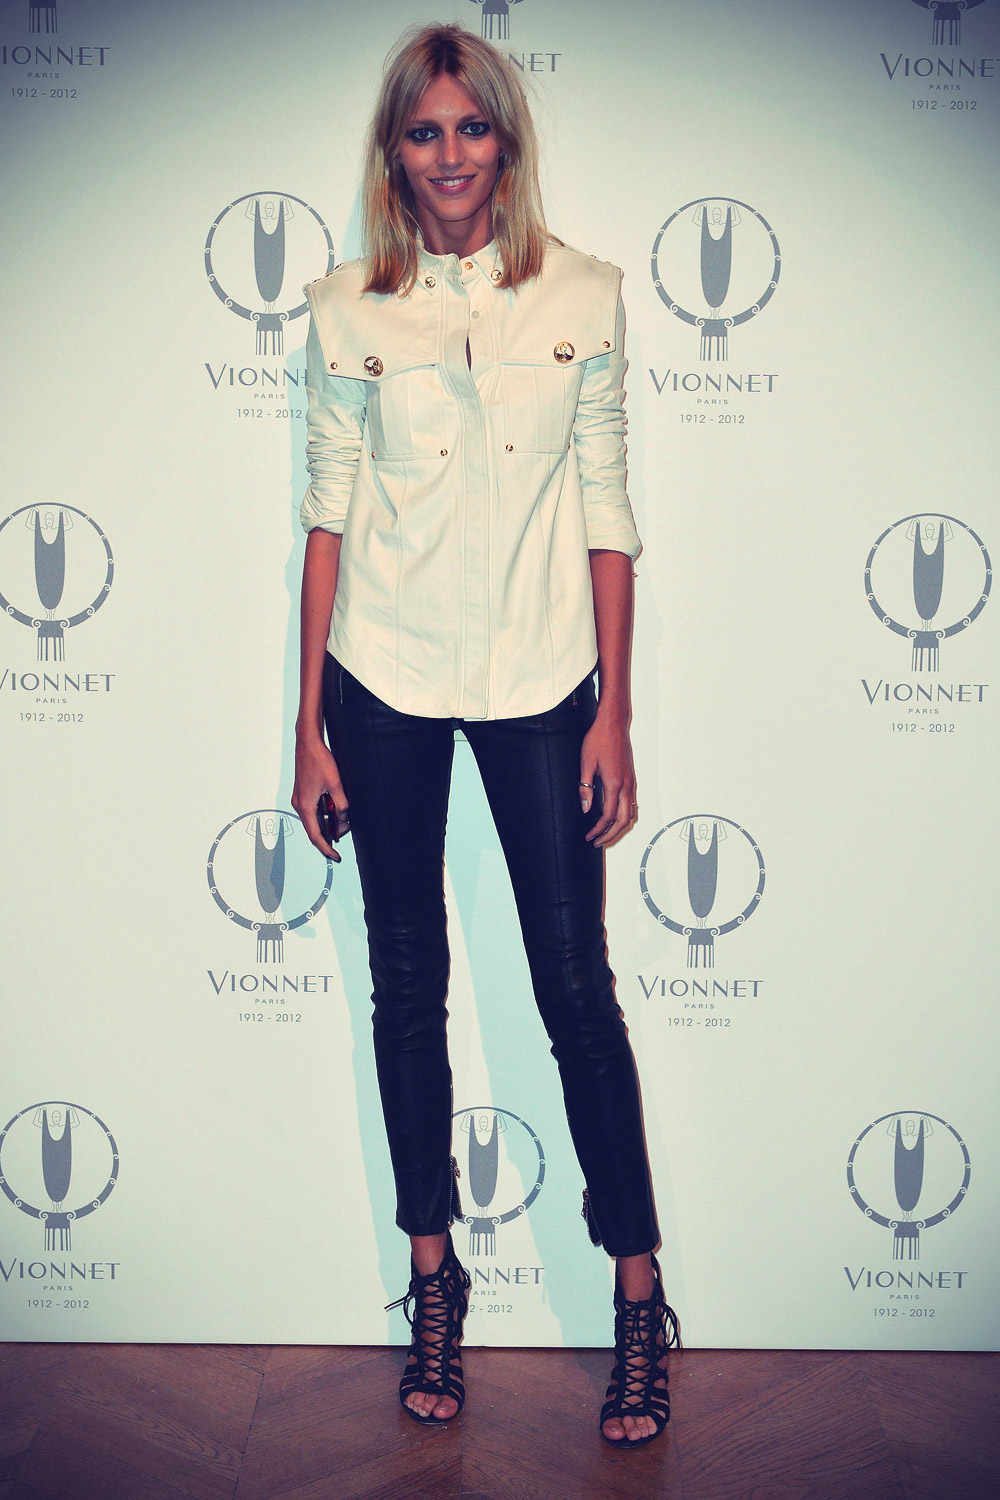 Anja Rubik poses during the Maison Vionnet 100th Anniversary